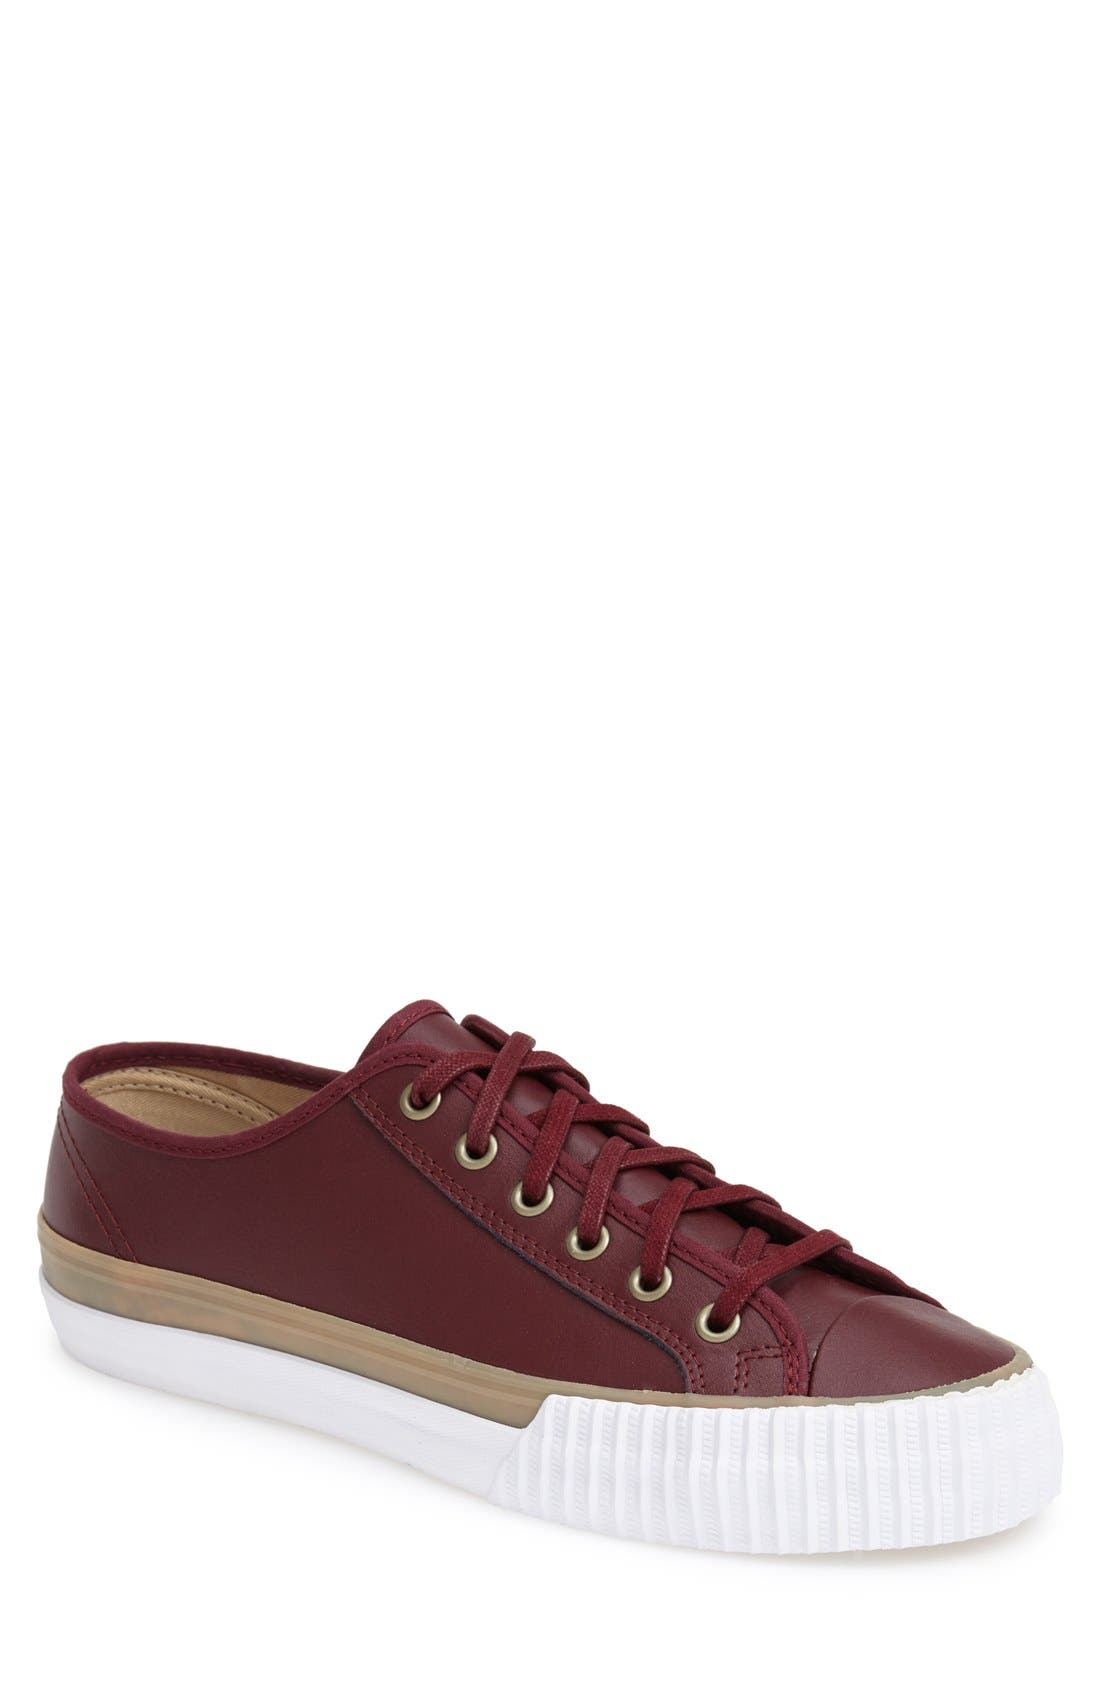 PF FLYERS,                             'Center Lo' Leather Sneaker,                             Main thumbnail 1, color,                             932